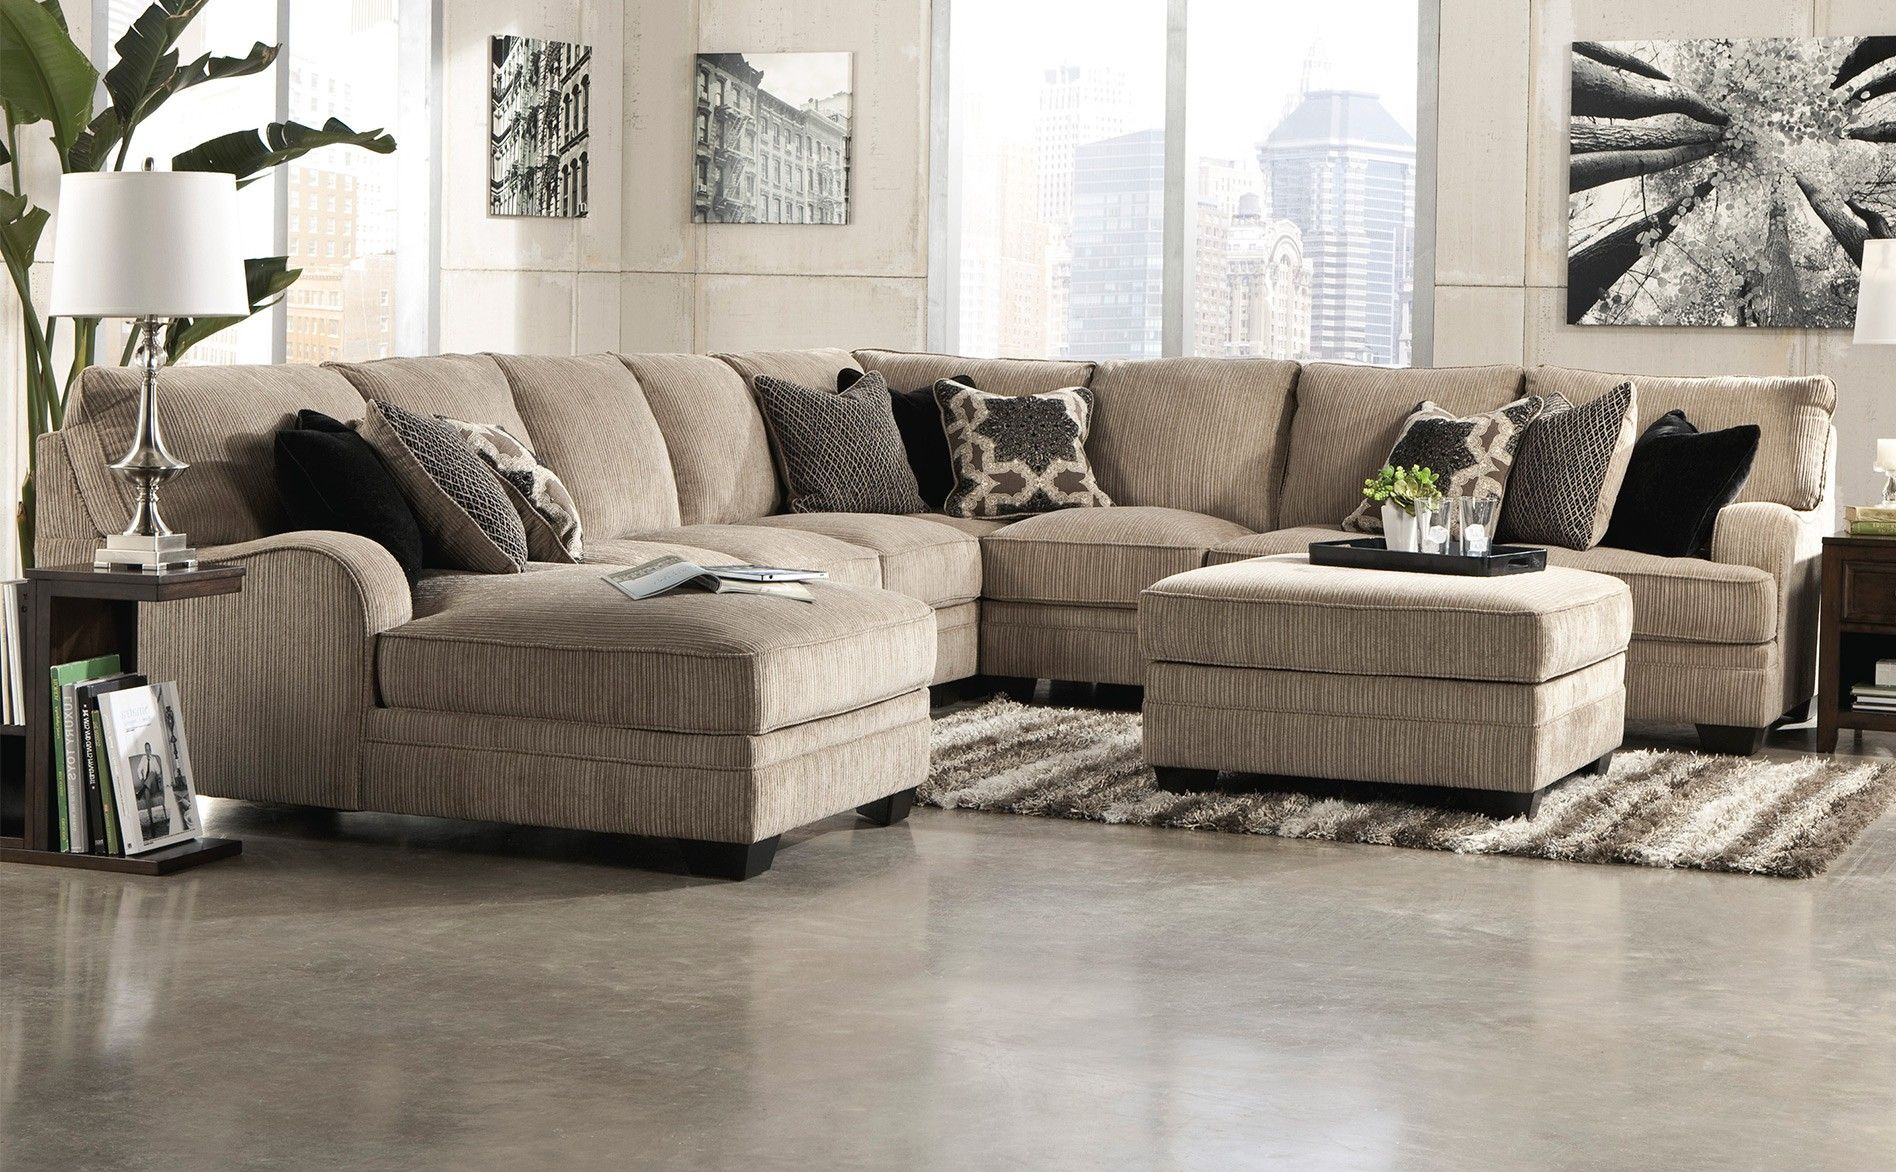 Ashley Katisha Sectional - Platinum : katisha sectional ashley - Sectionals, Sofas & Couches